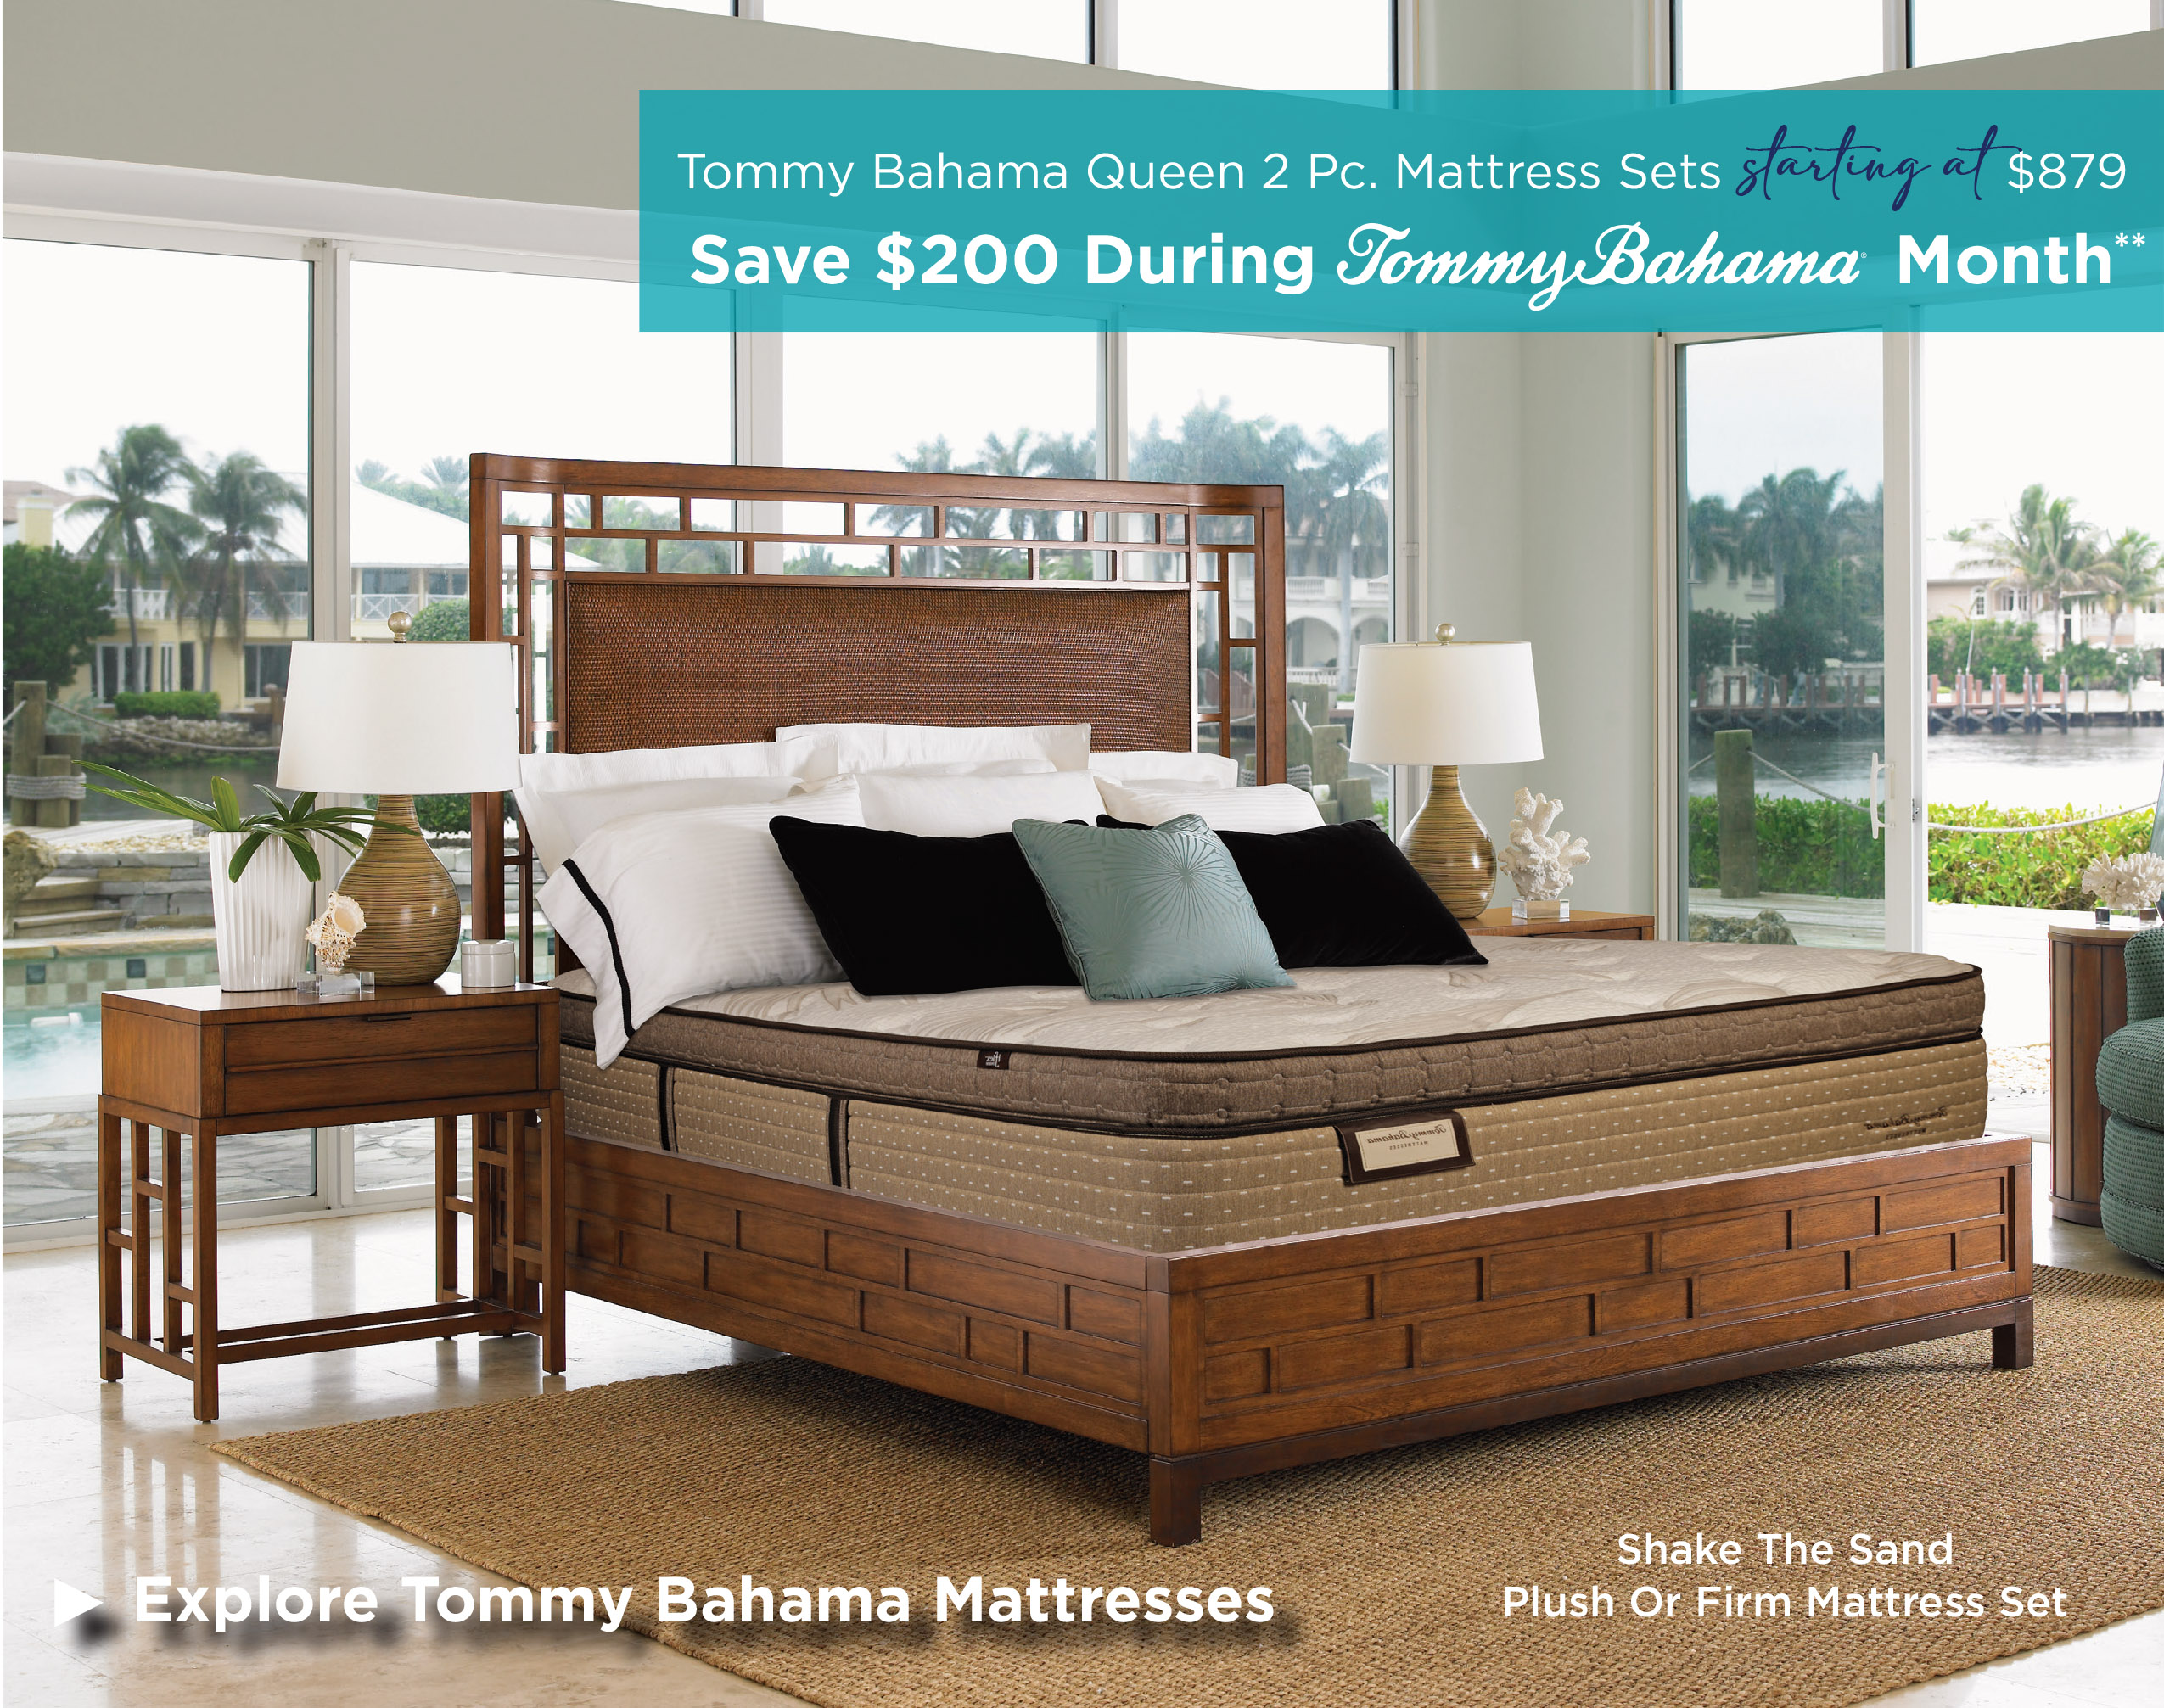 Save $200 on mattresses during Tommy Bahama Month